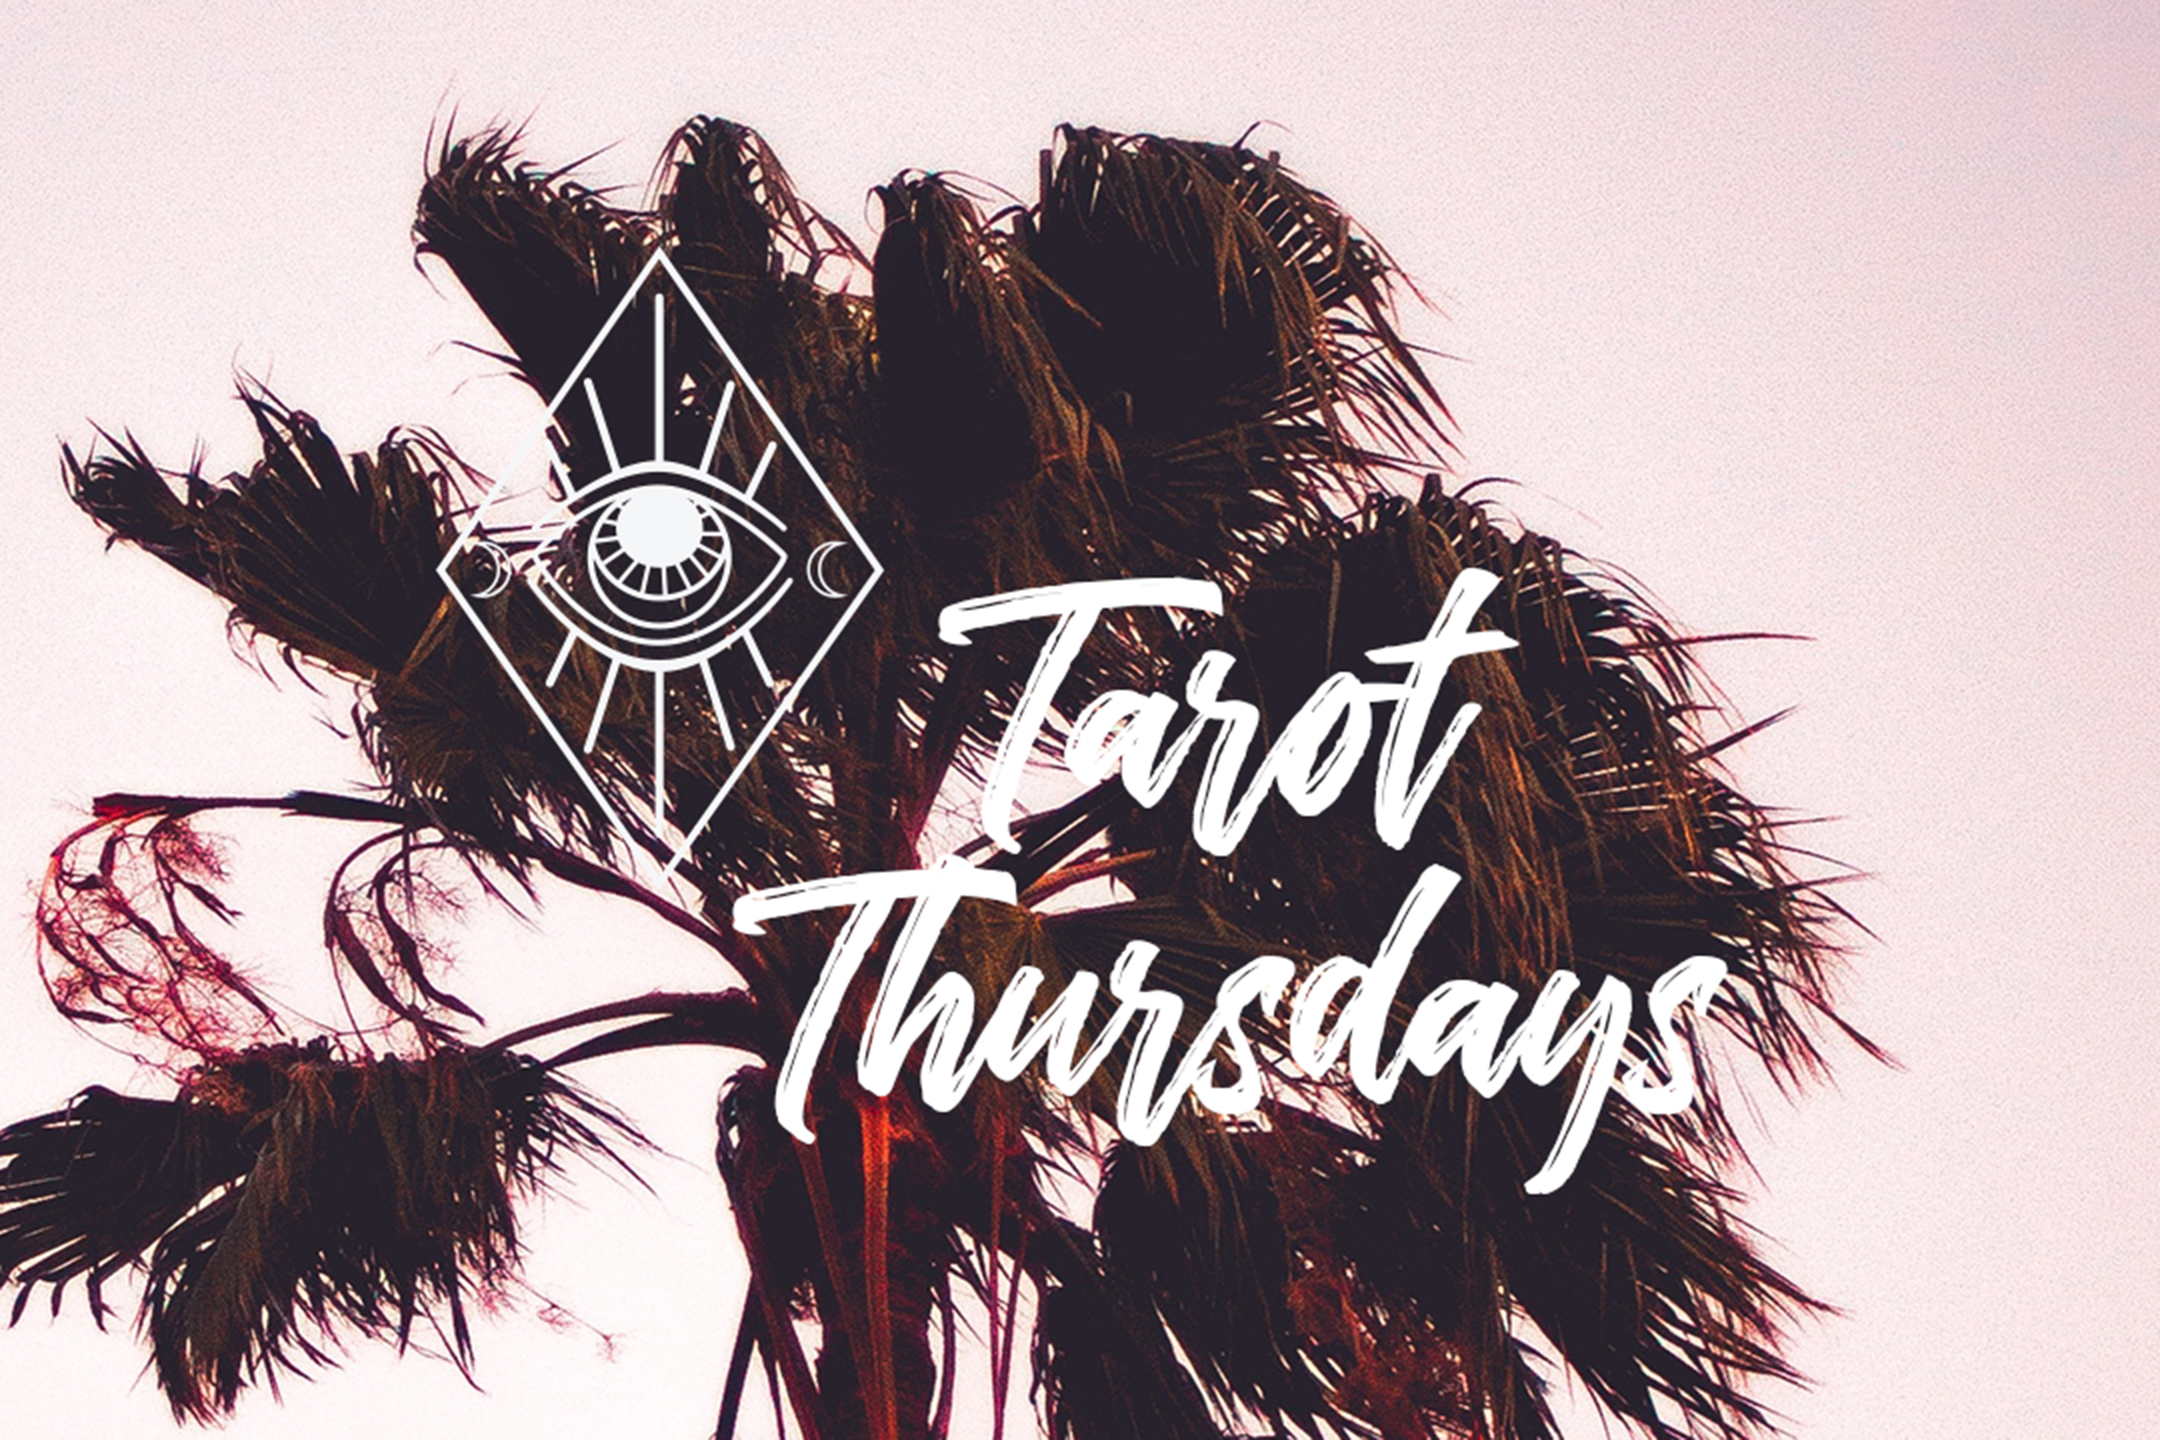 tarot-thursdays-header.jpg